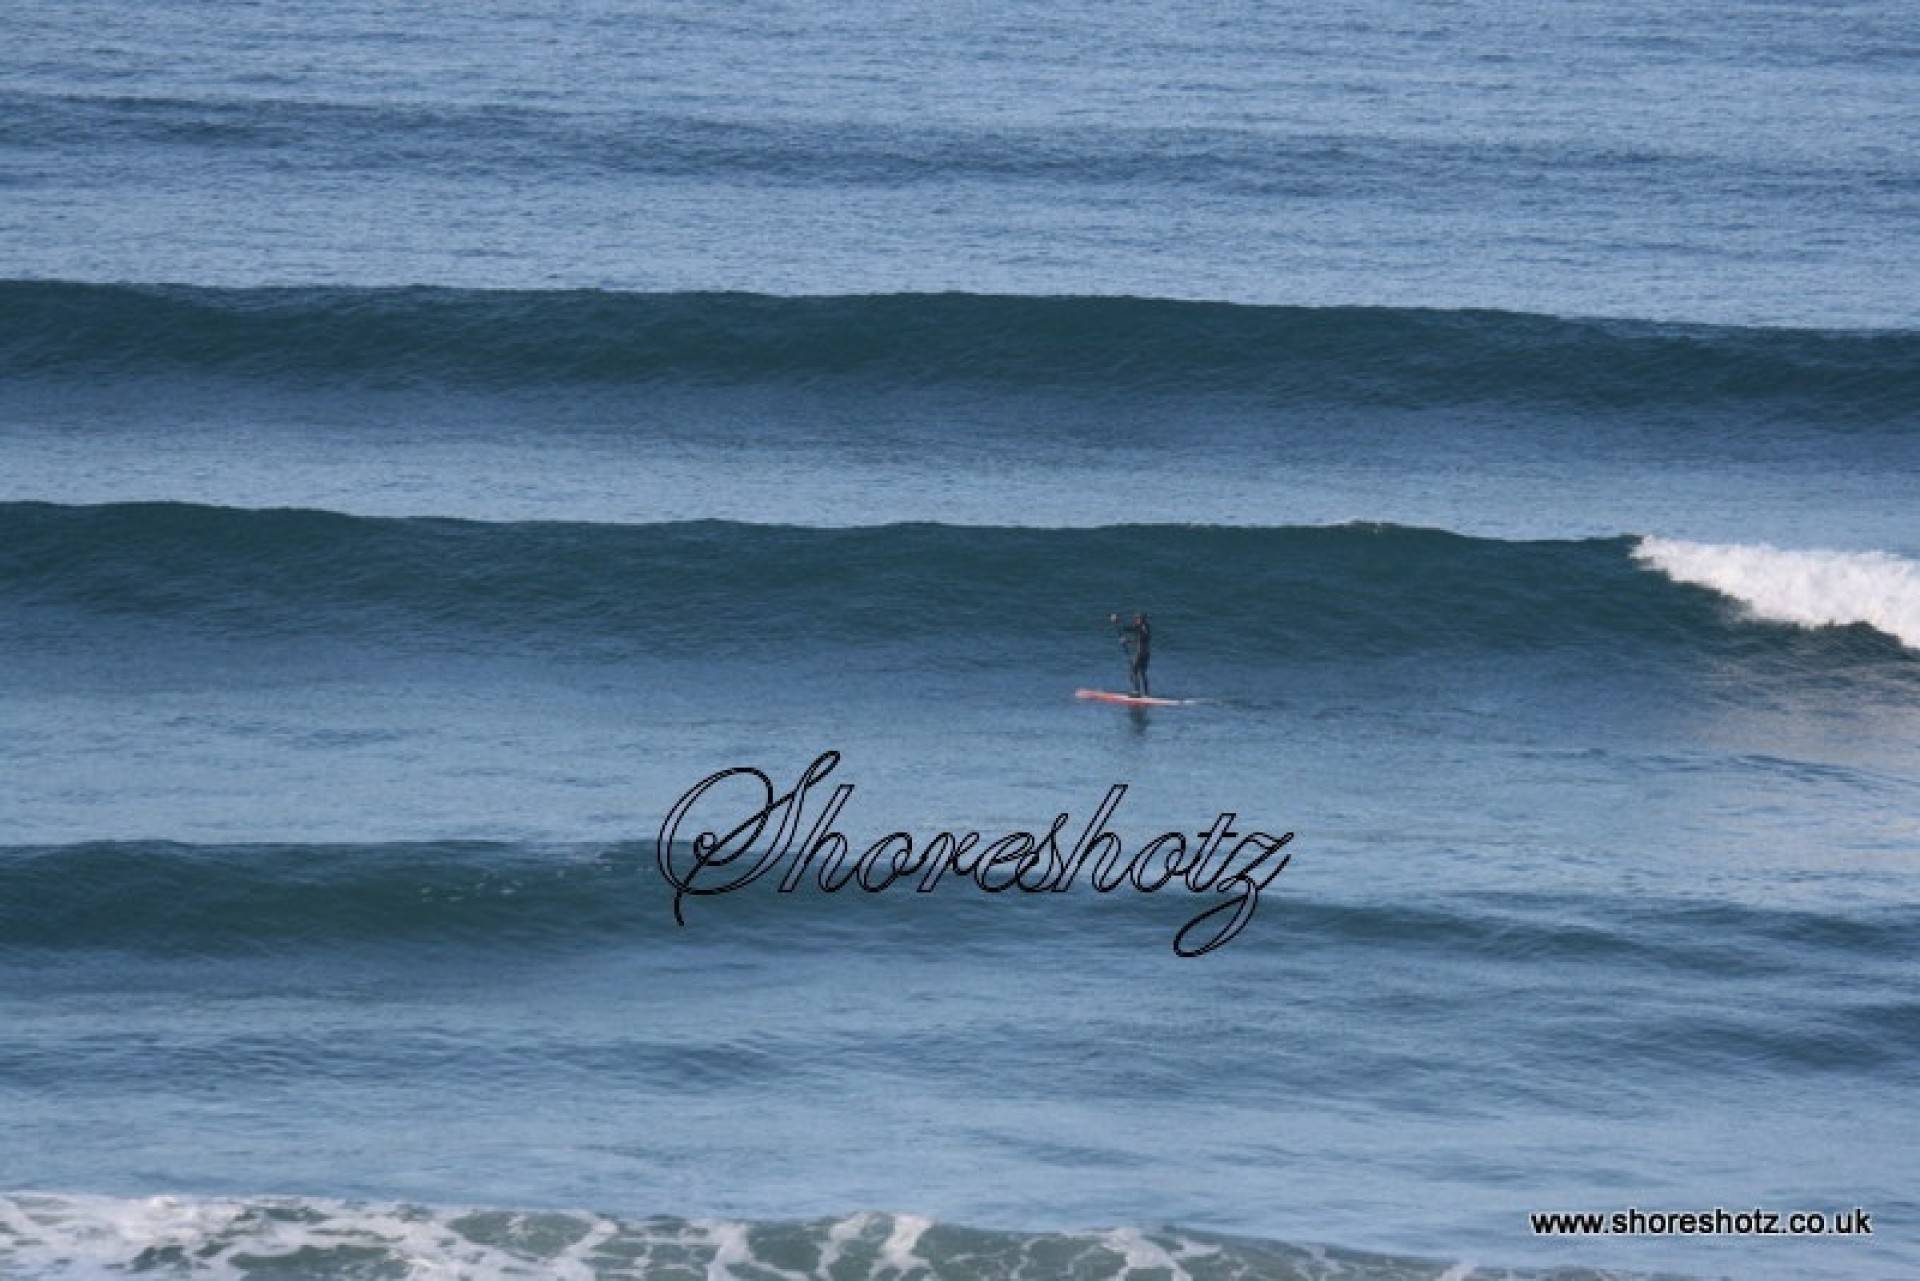 shoreshotz's photo of Whitsand Bay